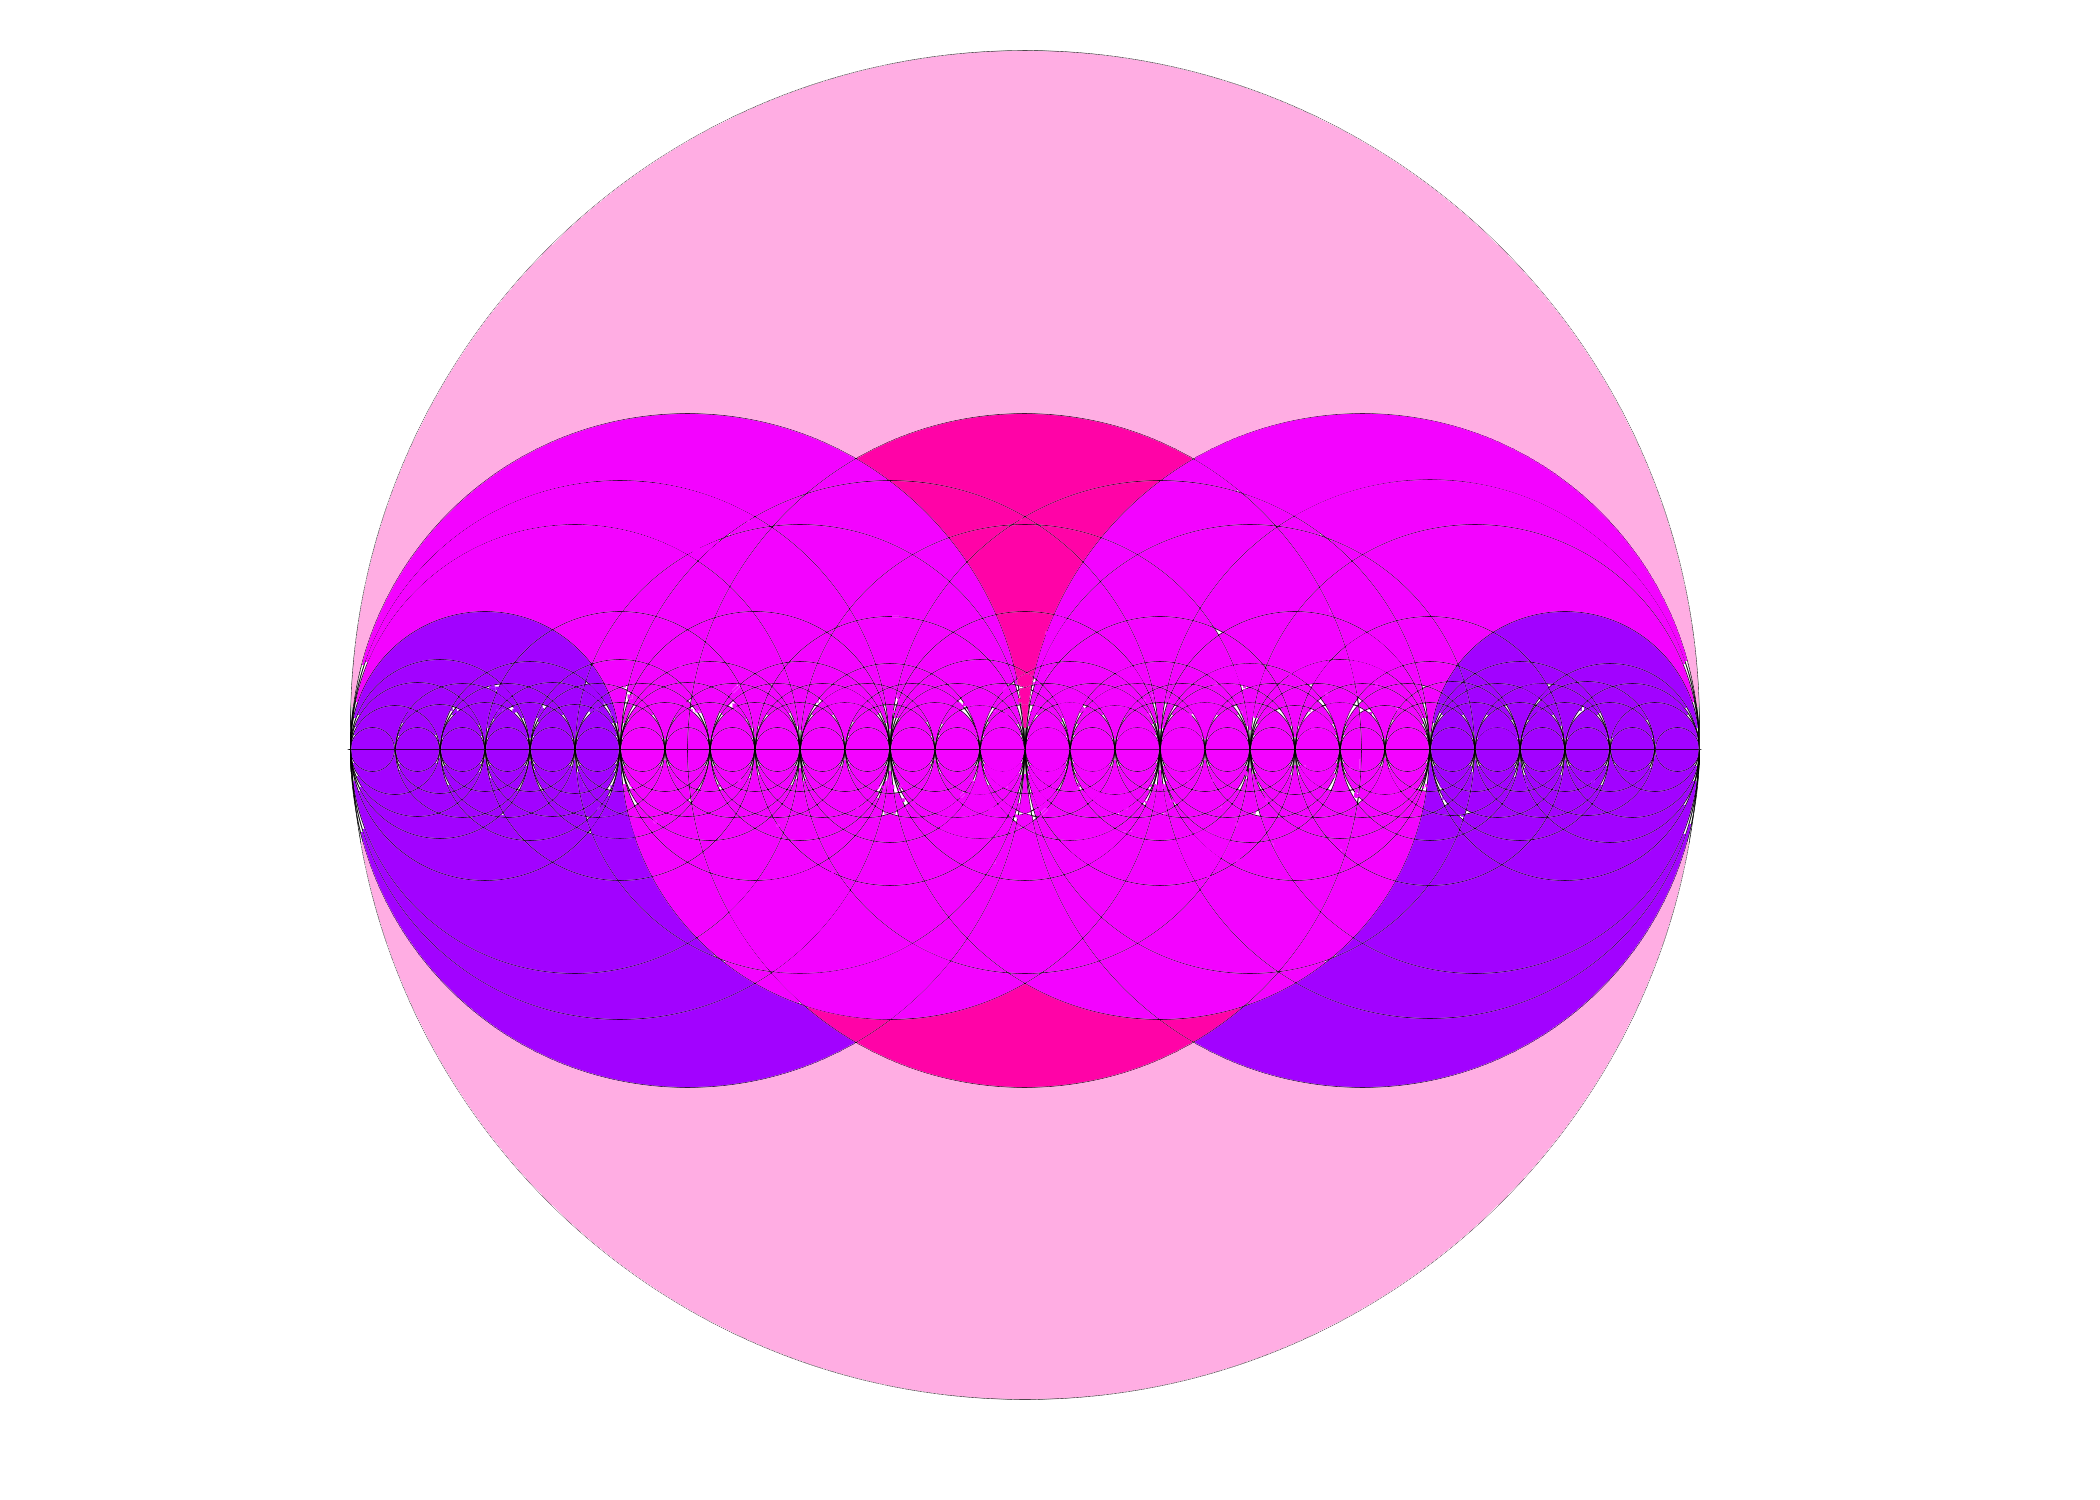 Griduler Circles